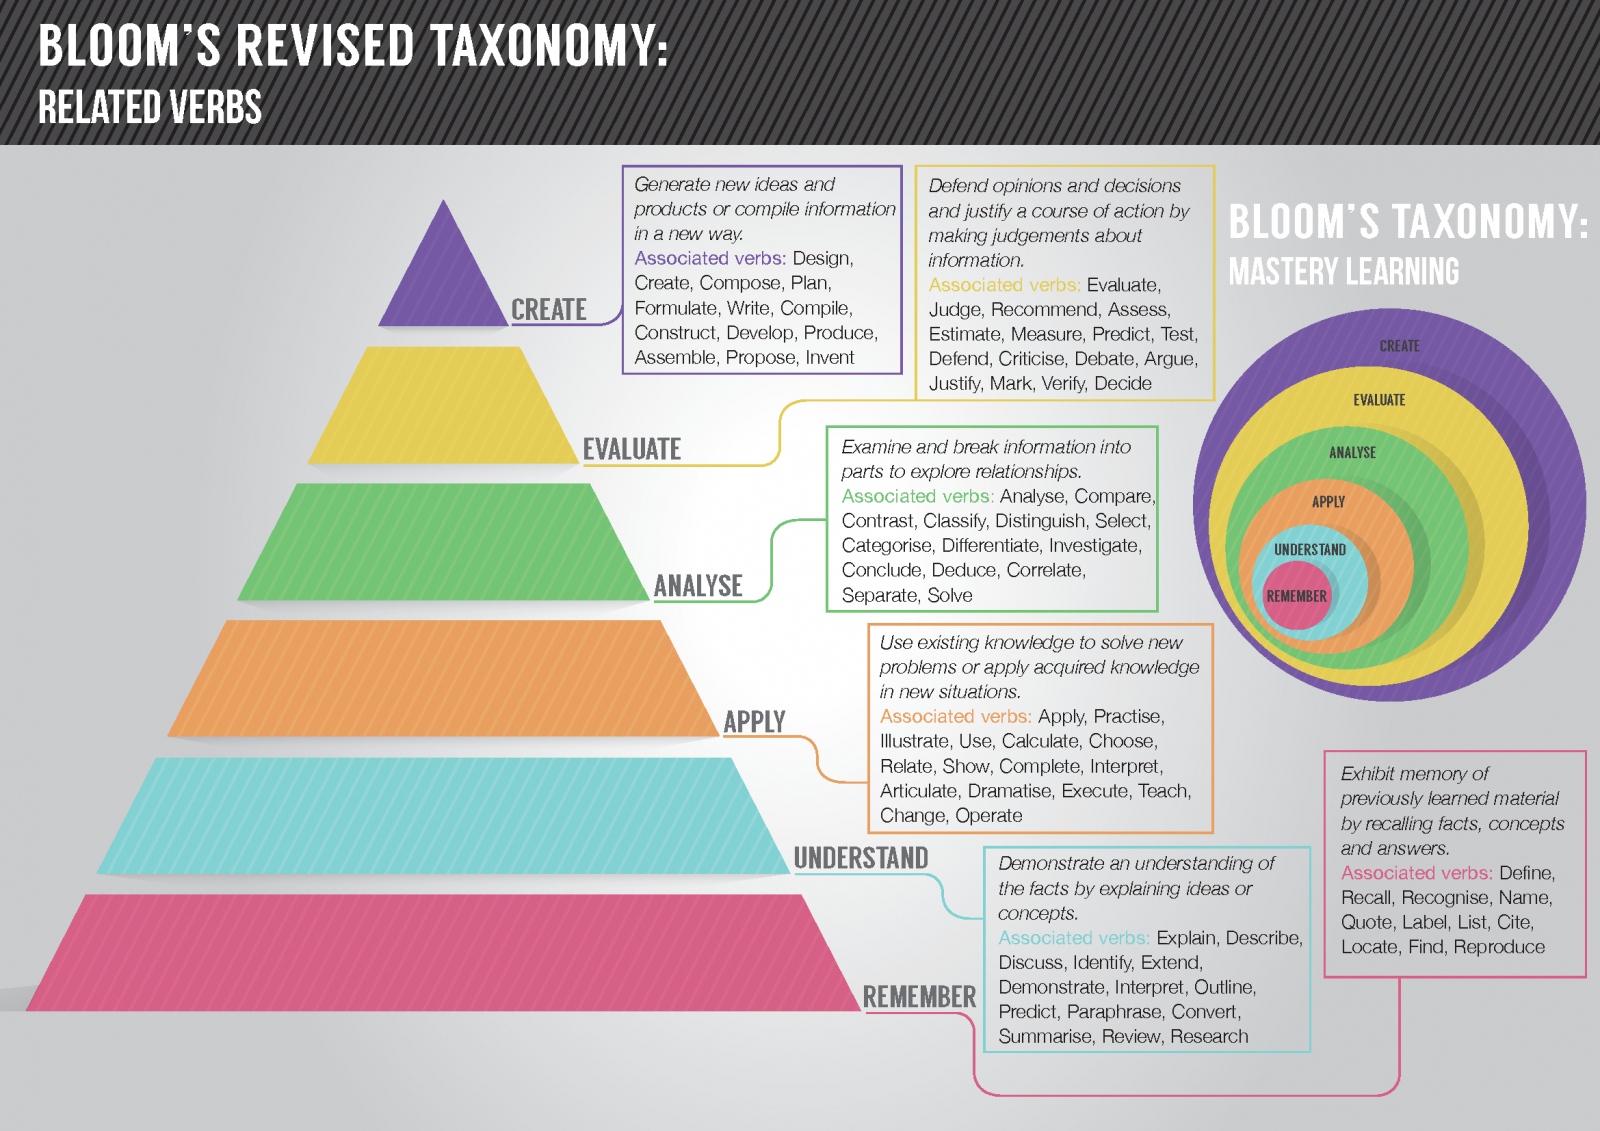 http://www.allsaintshwb.co.uk/uploads/303/files/Knowledge-commons-blooms-taxonomy-GetSmarter.png